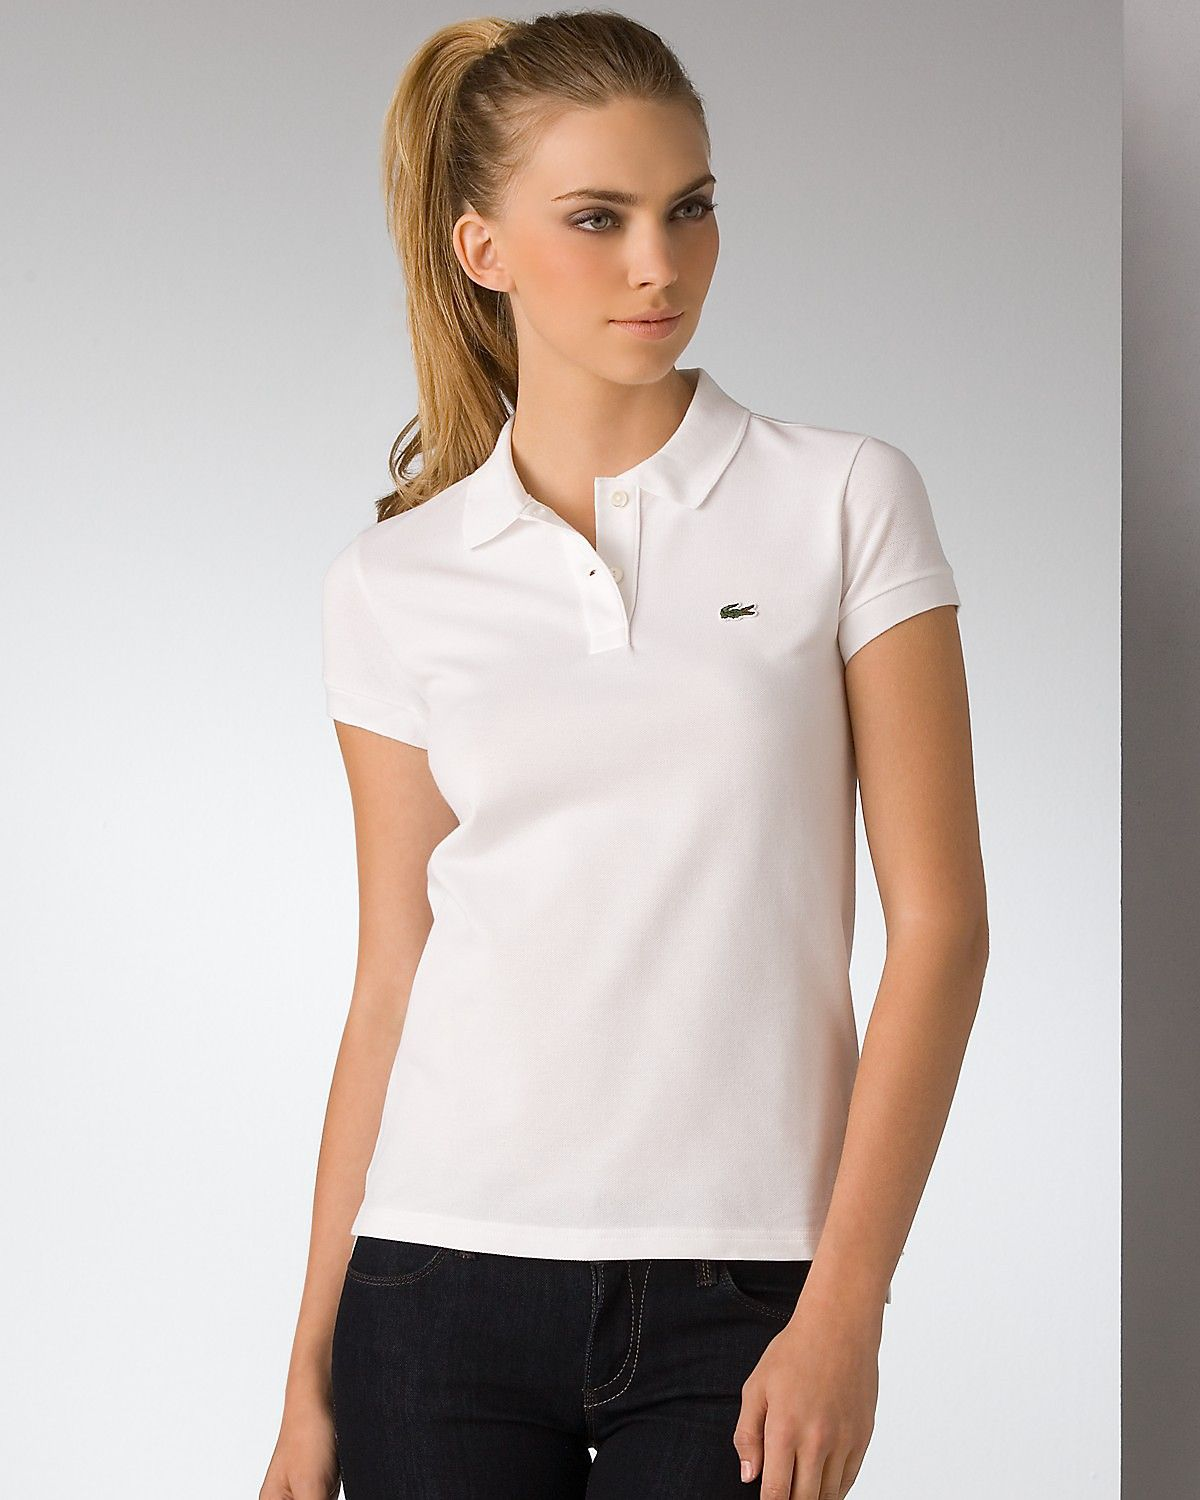 lacoste pique polo bloomingdale 39 s x pinterest lacoste pique and polos. Black Bedroom Furniture Sets. Home Design Ideas